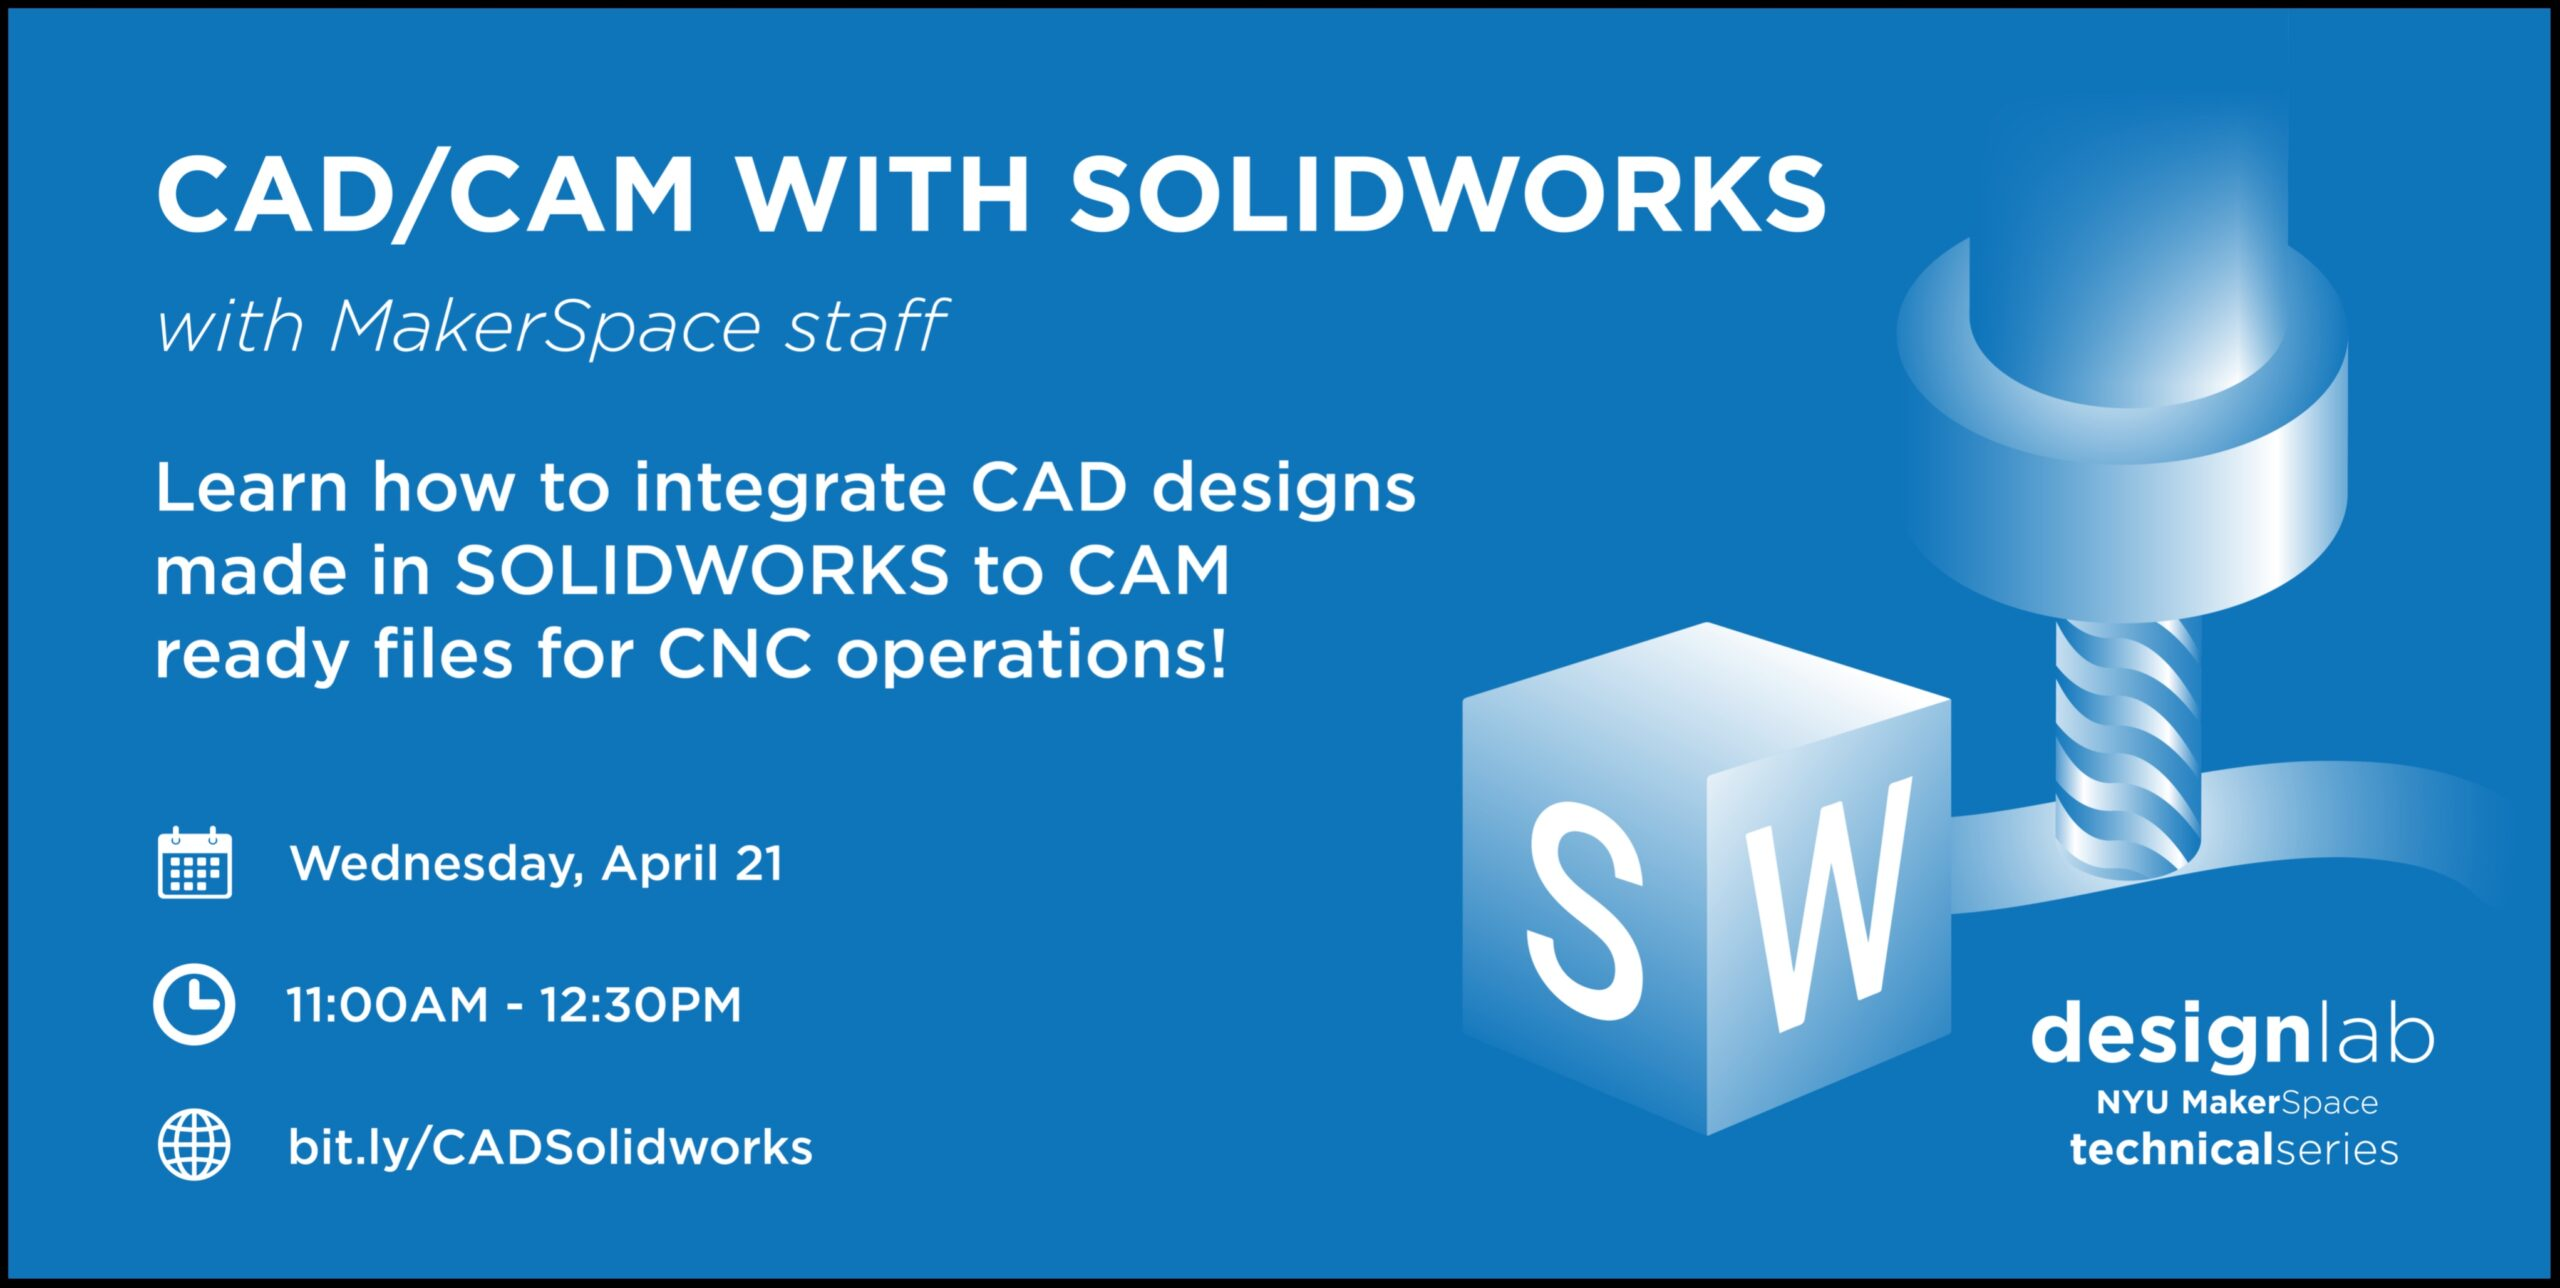 CAD CAM with Solidworks Flyer